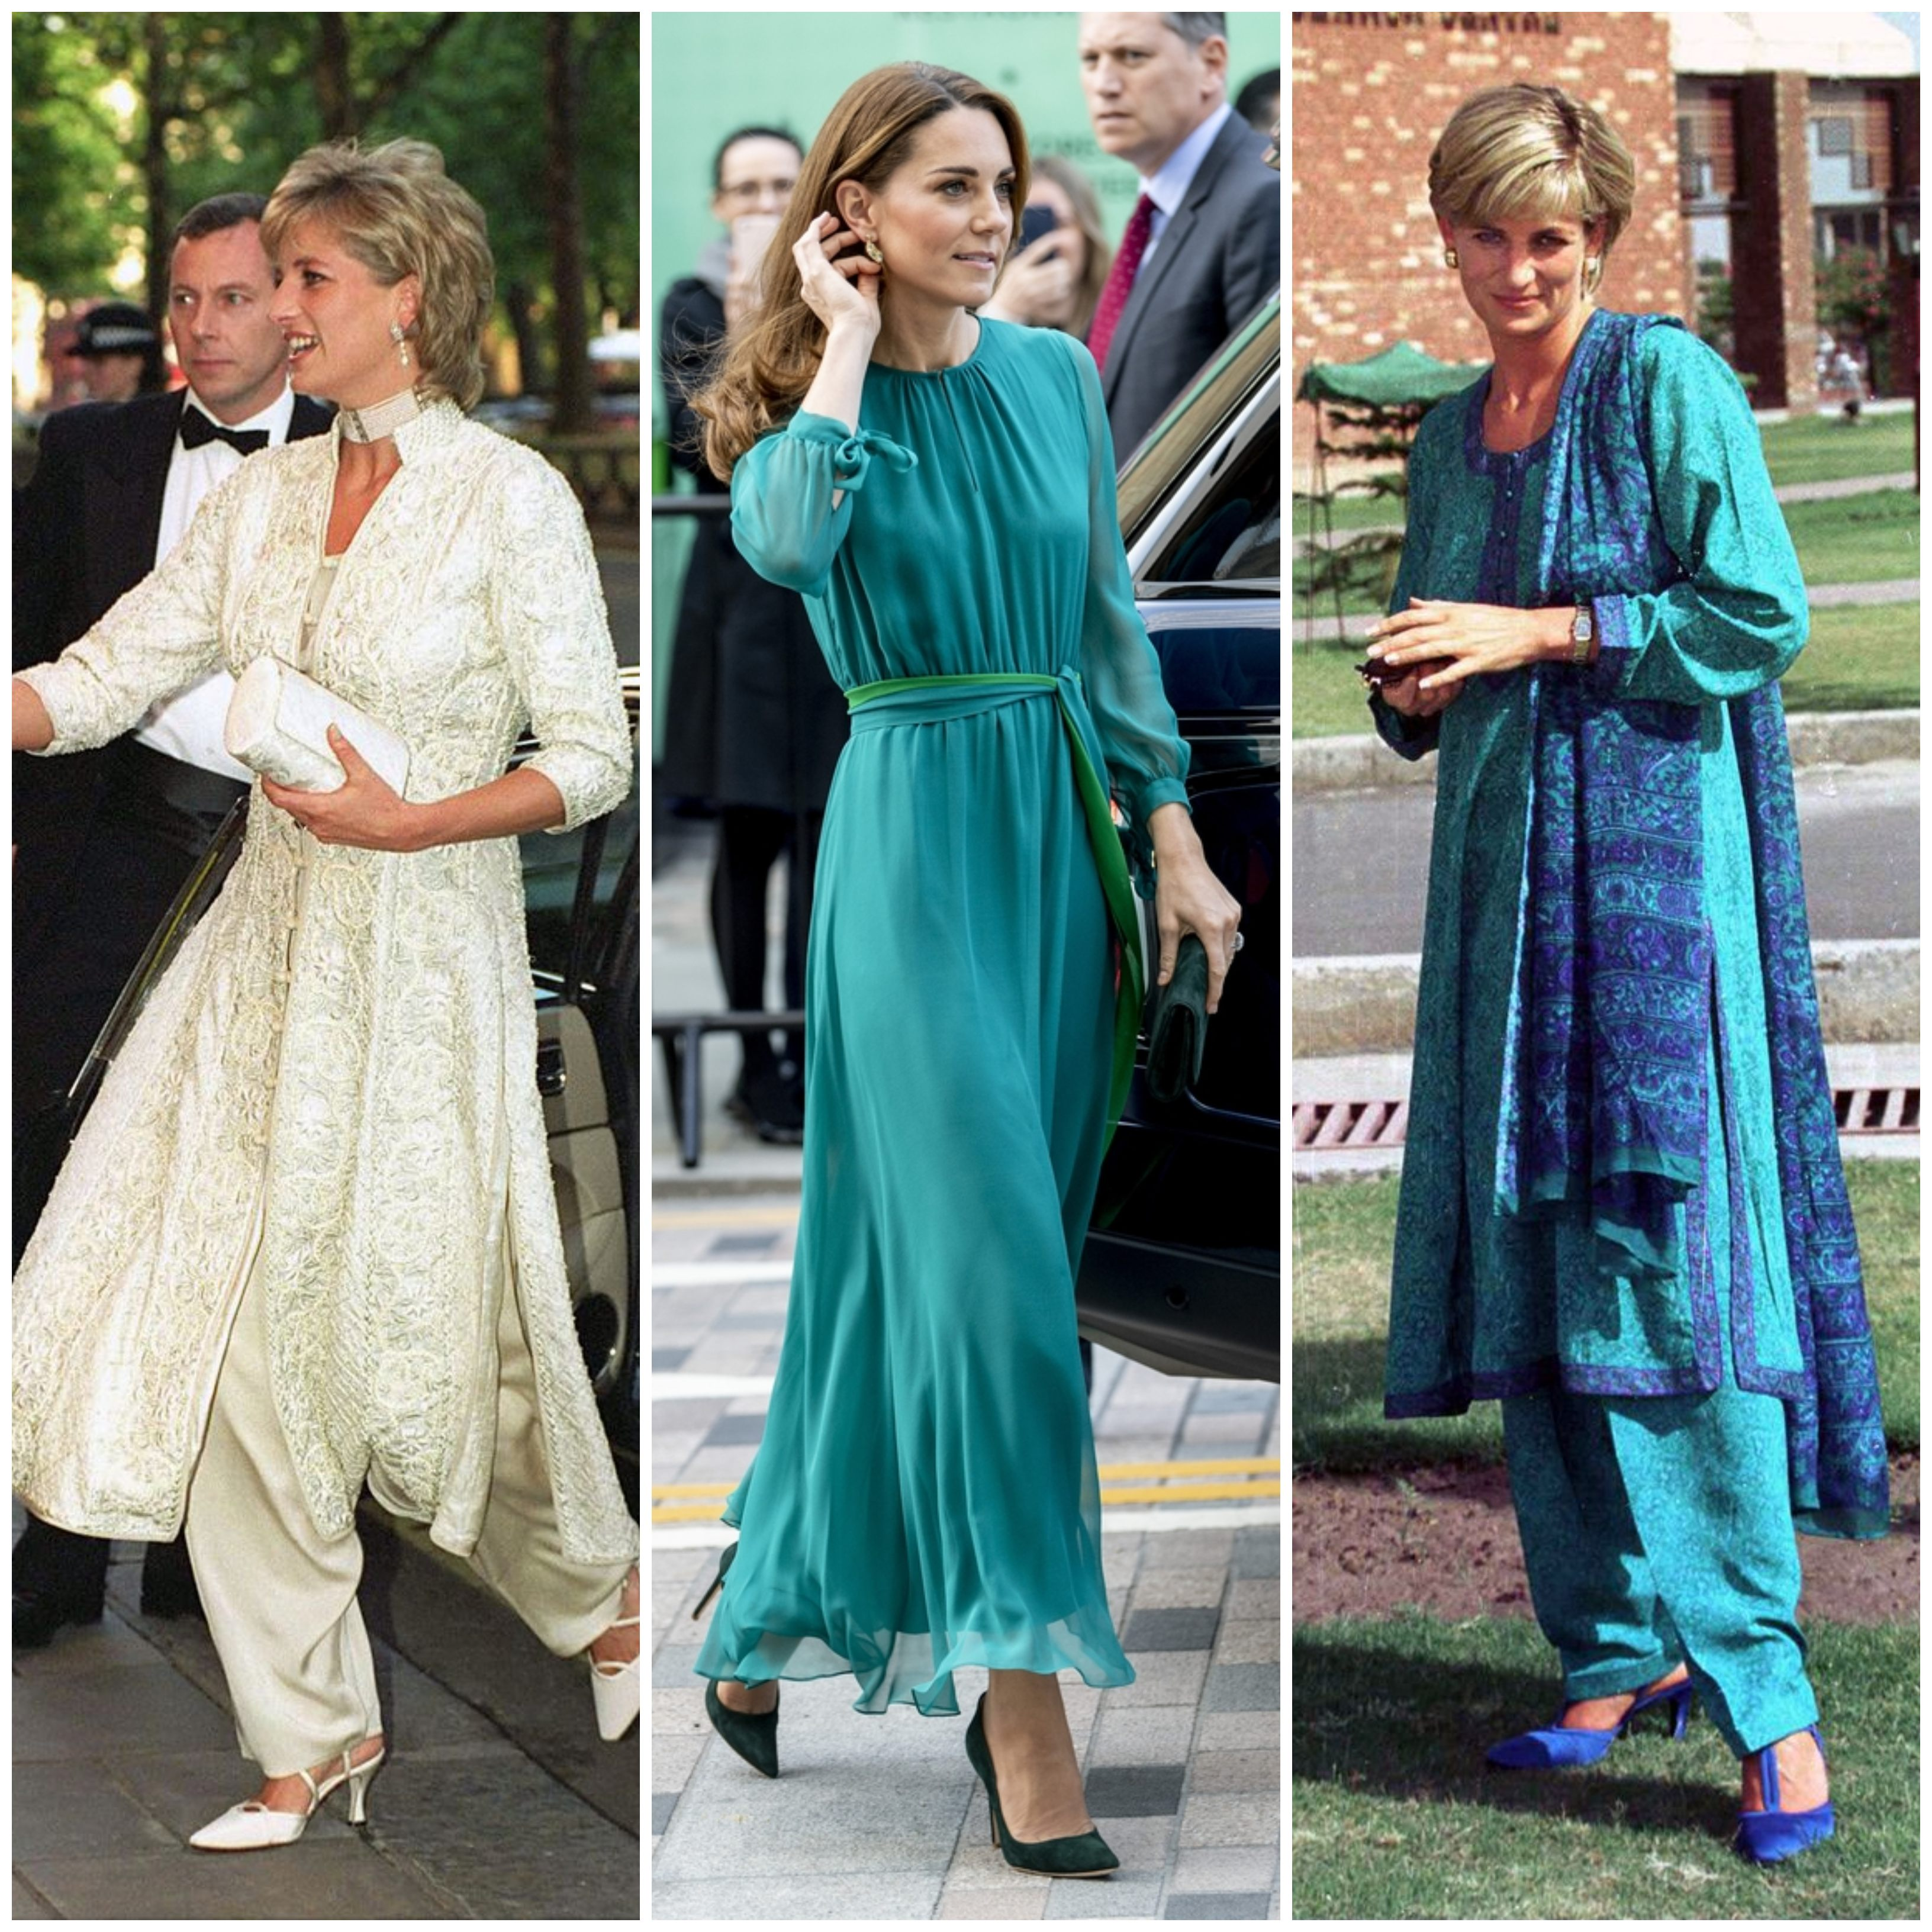 4 princess diana outfits kate middleton should take cue from for her pakistan trip